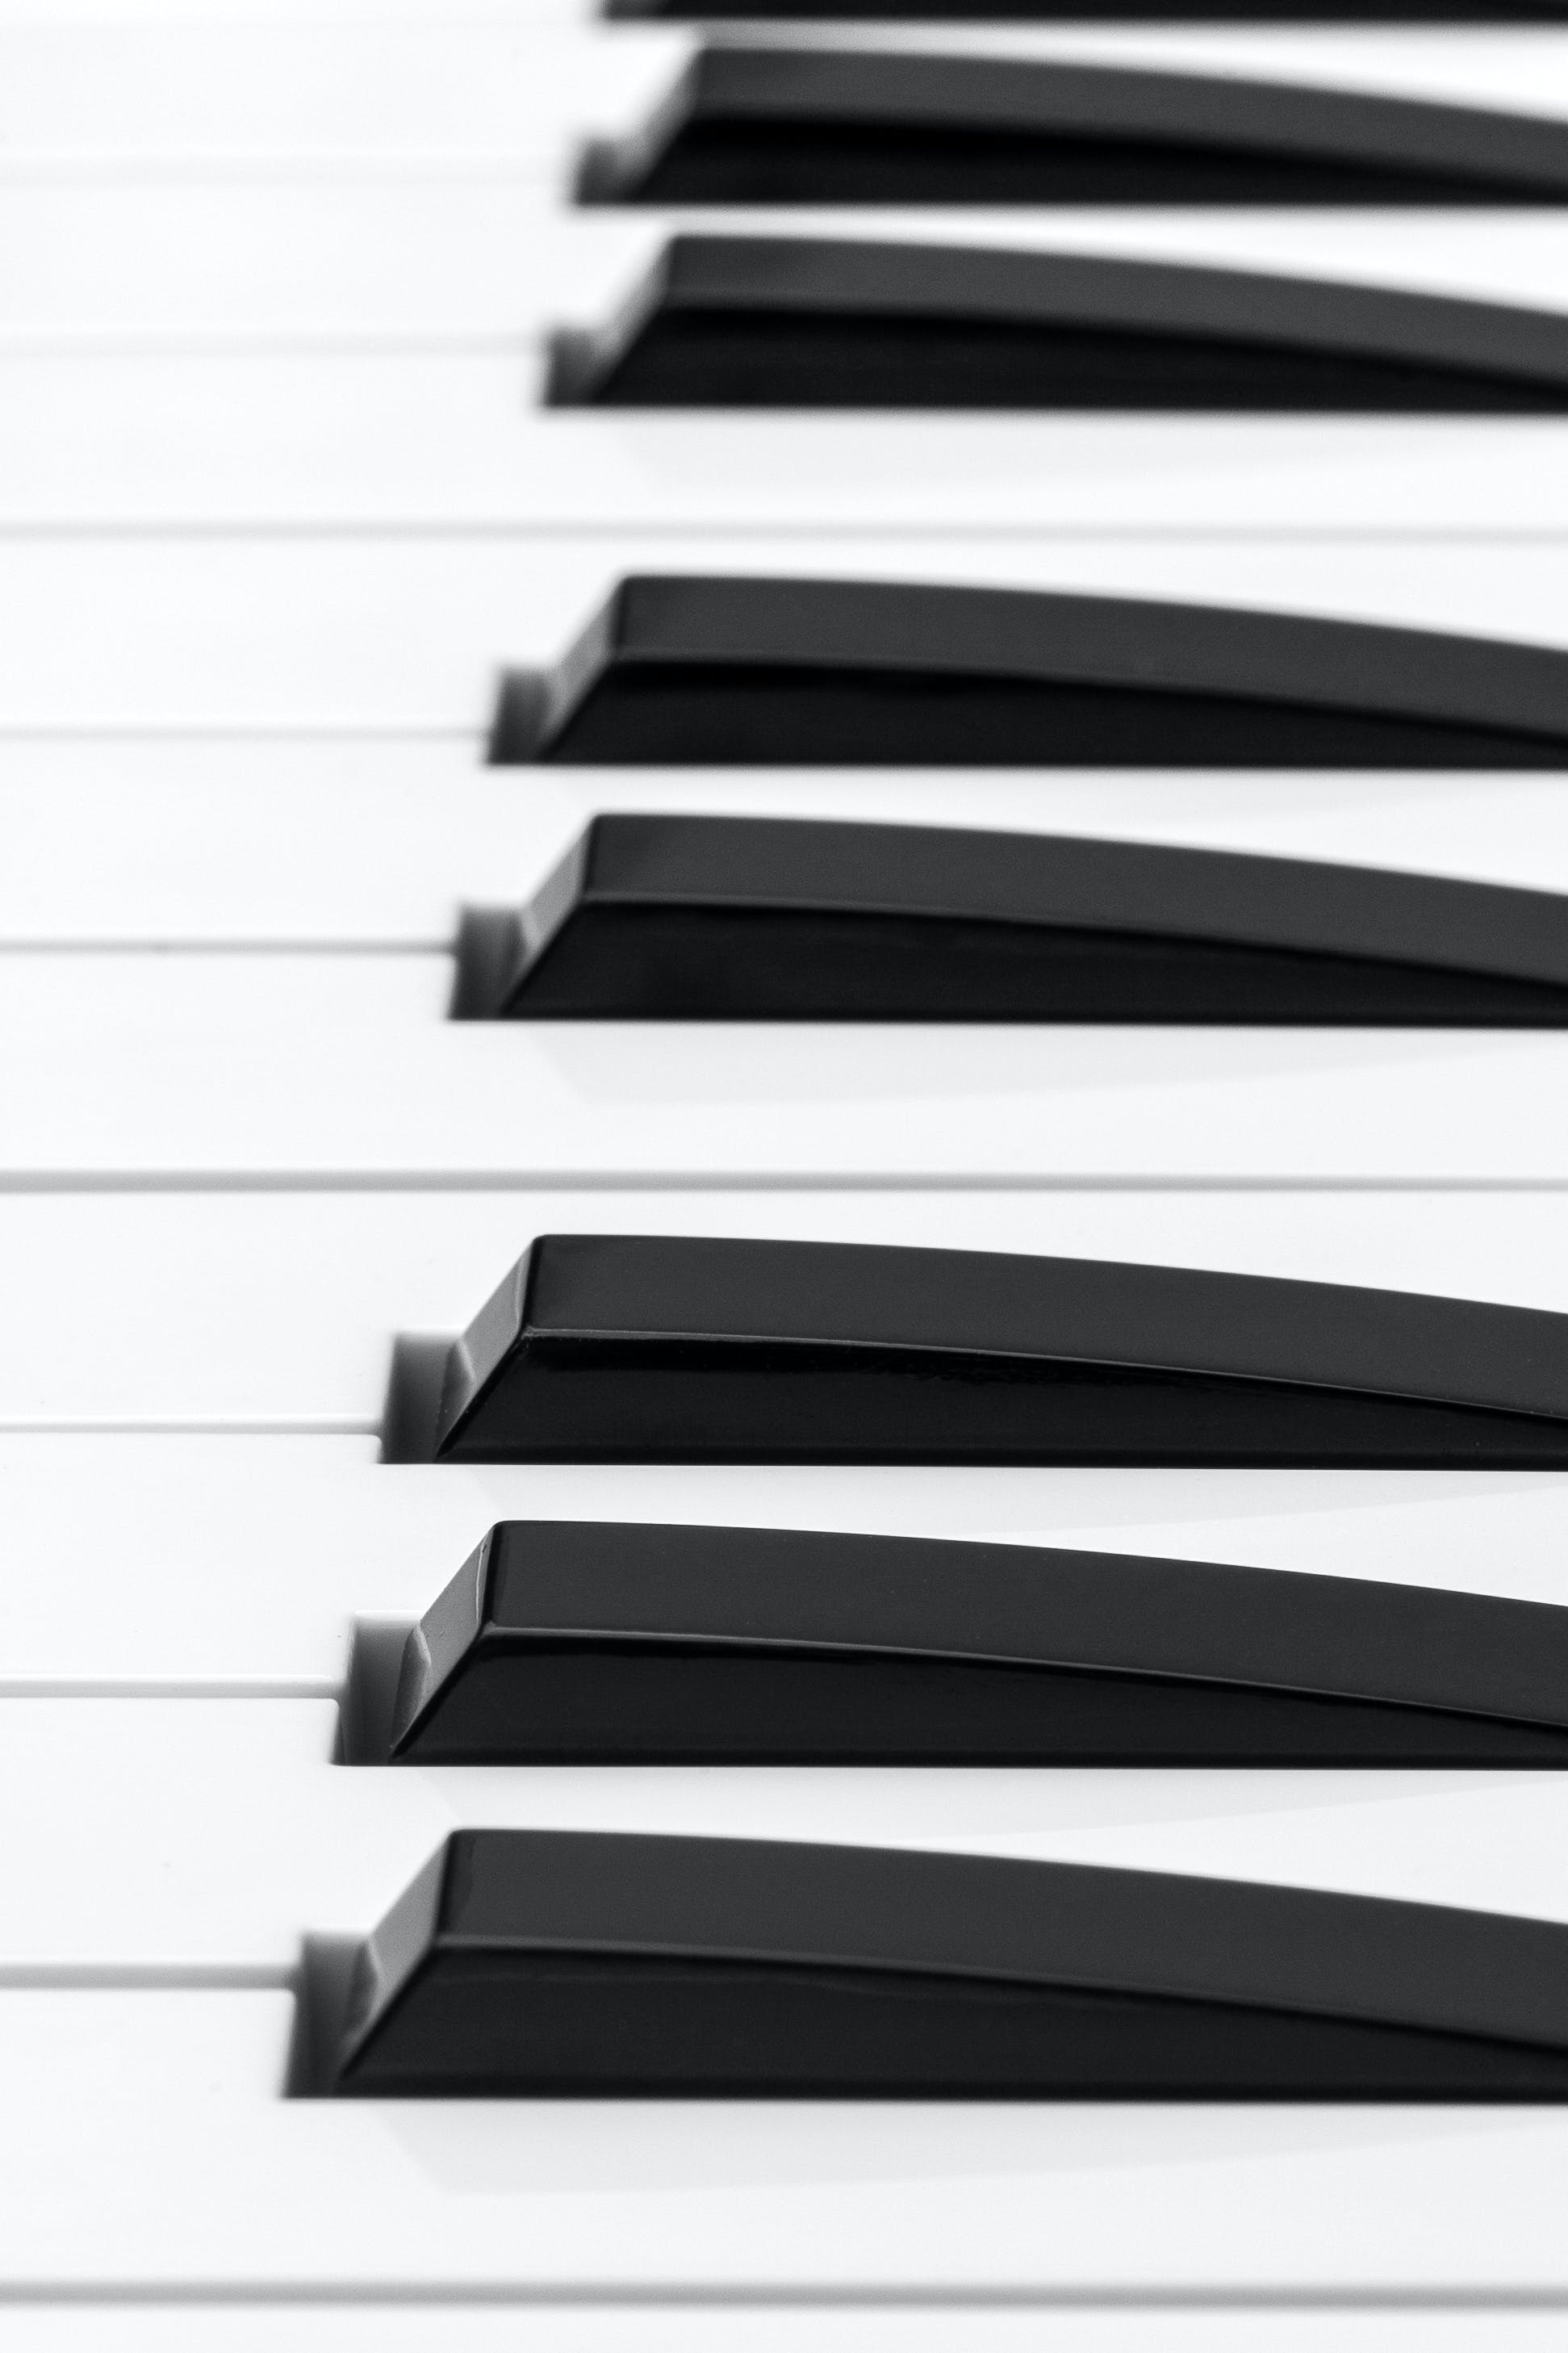 Free stock photo of music, piano, keyboard, musical instrument